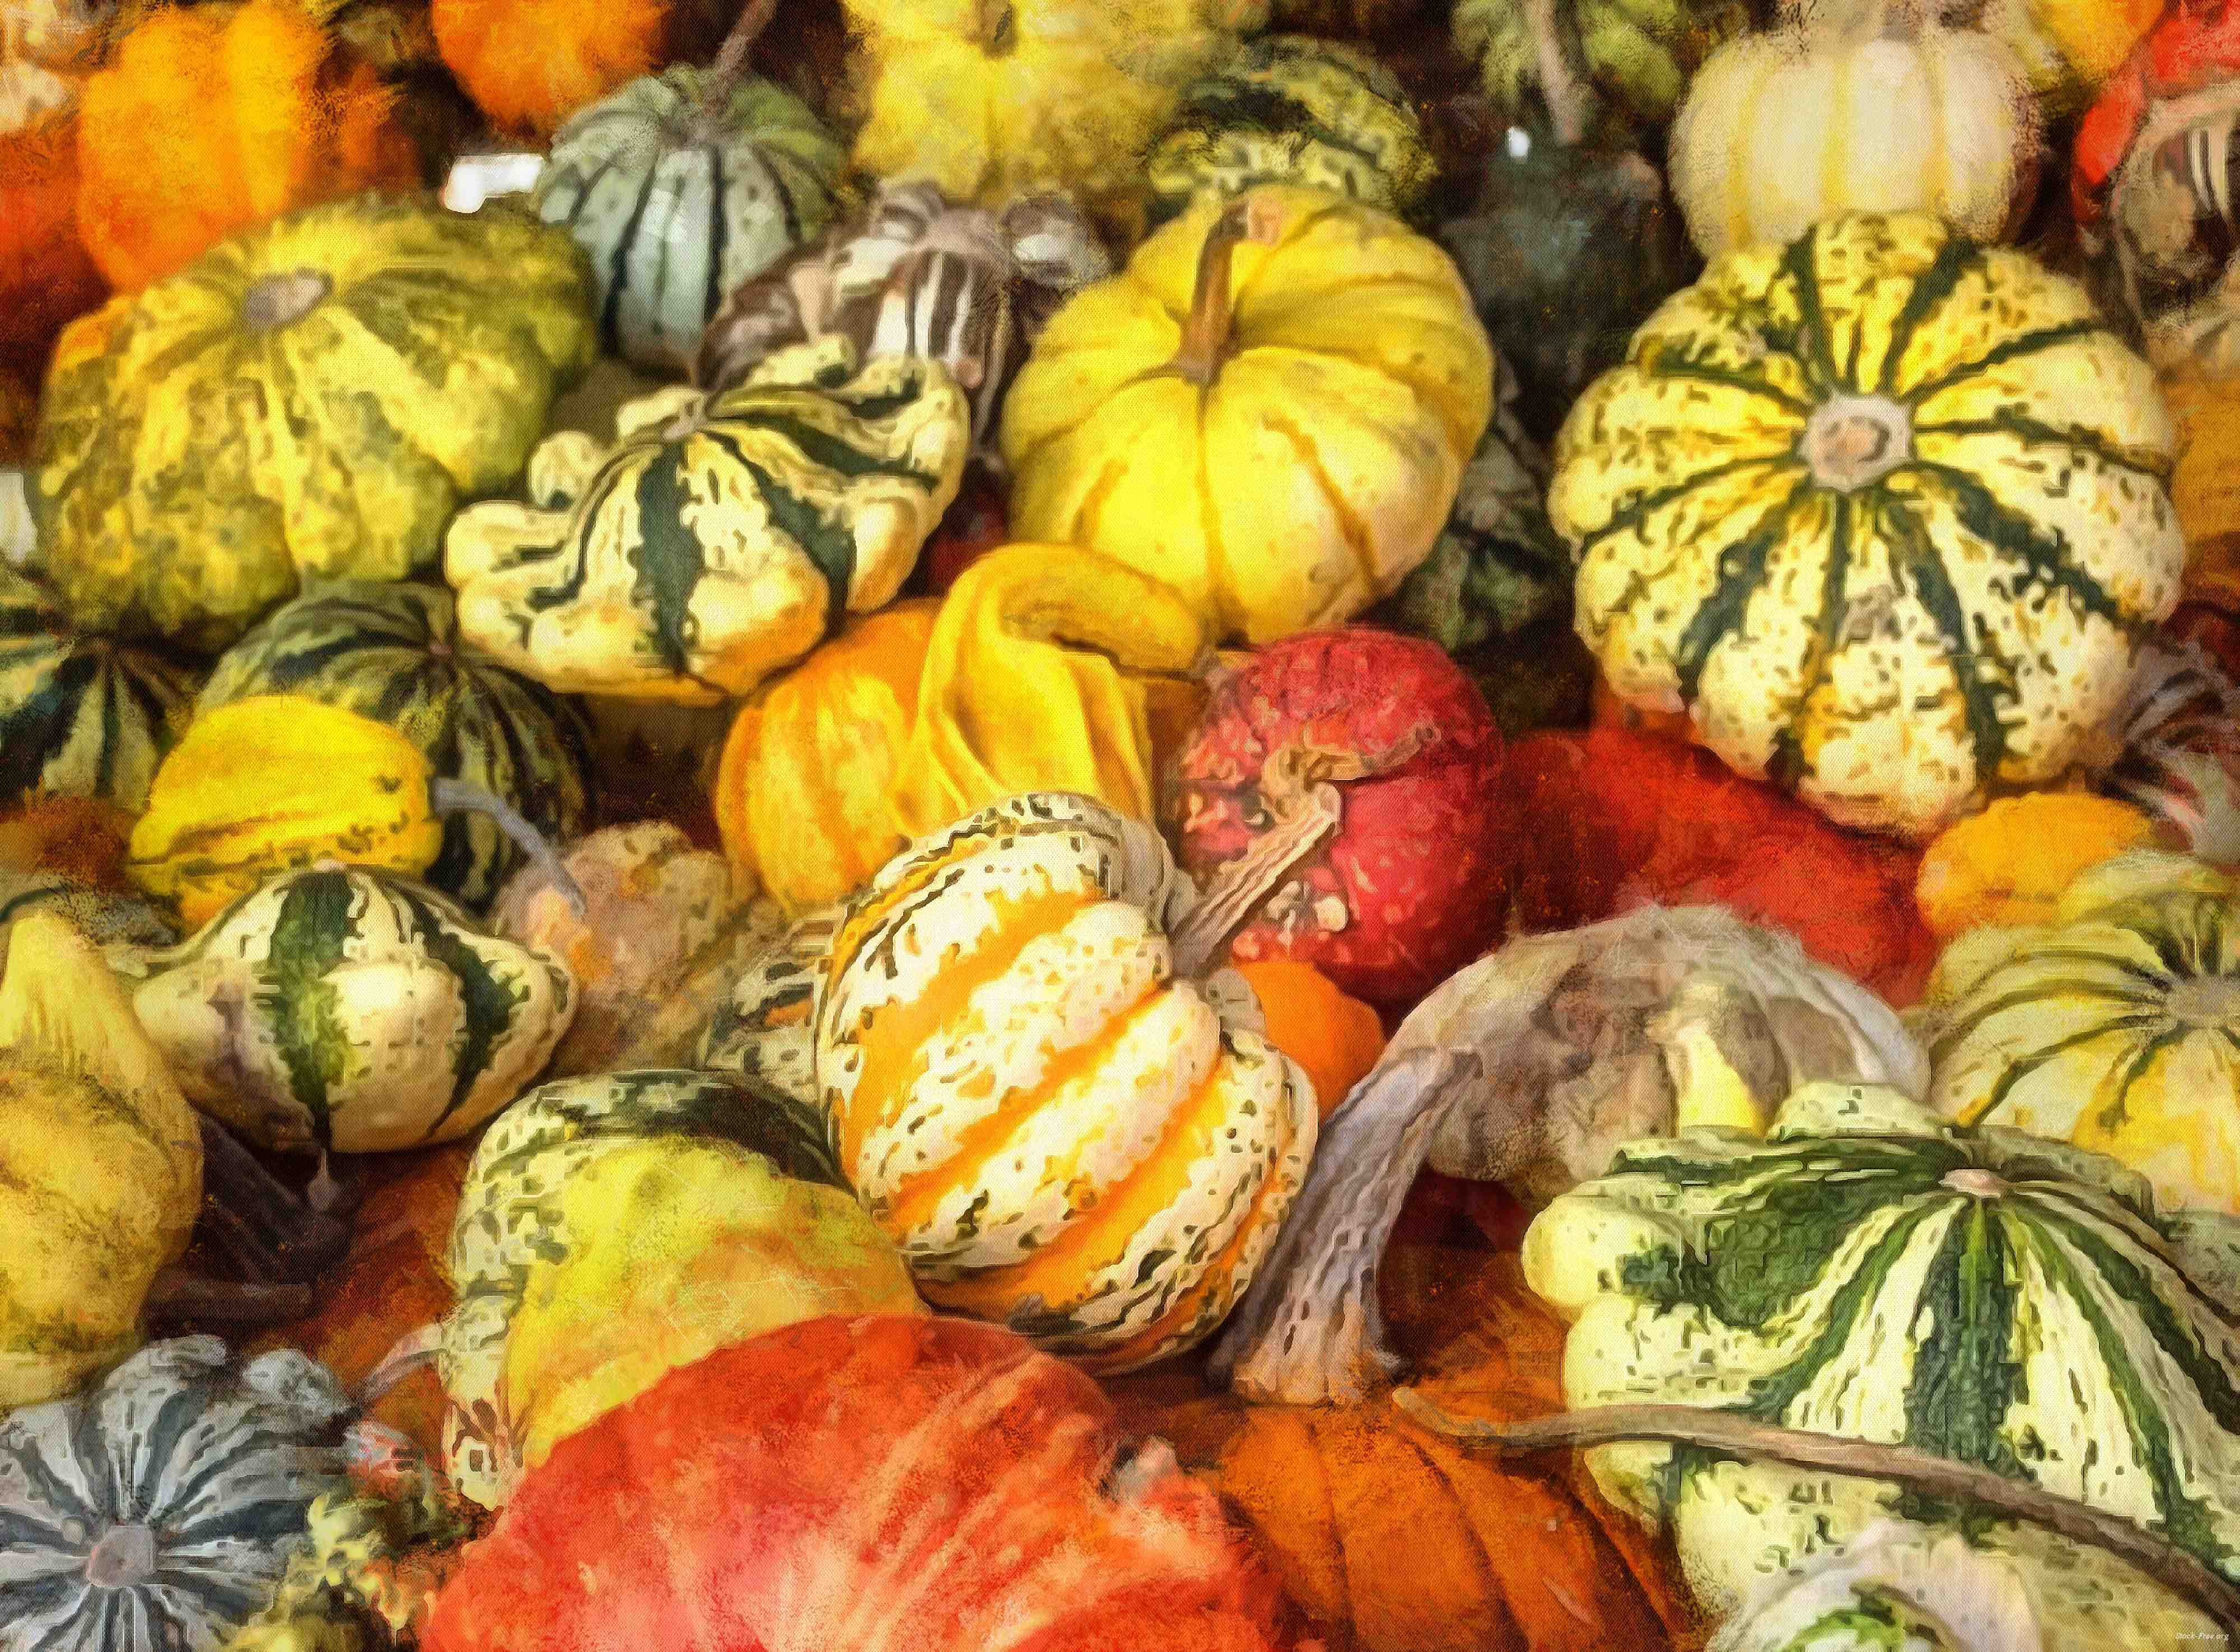 pumpkin, holiday, lots of pumpkins, garden, spooky, trick or treet, halloween -  stock free photos, public domain images, download free images, free stock images, public domain